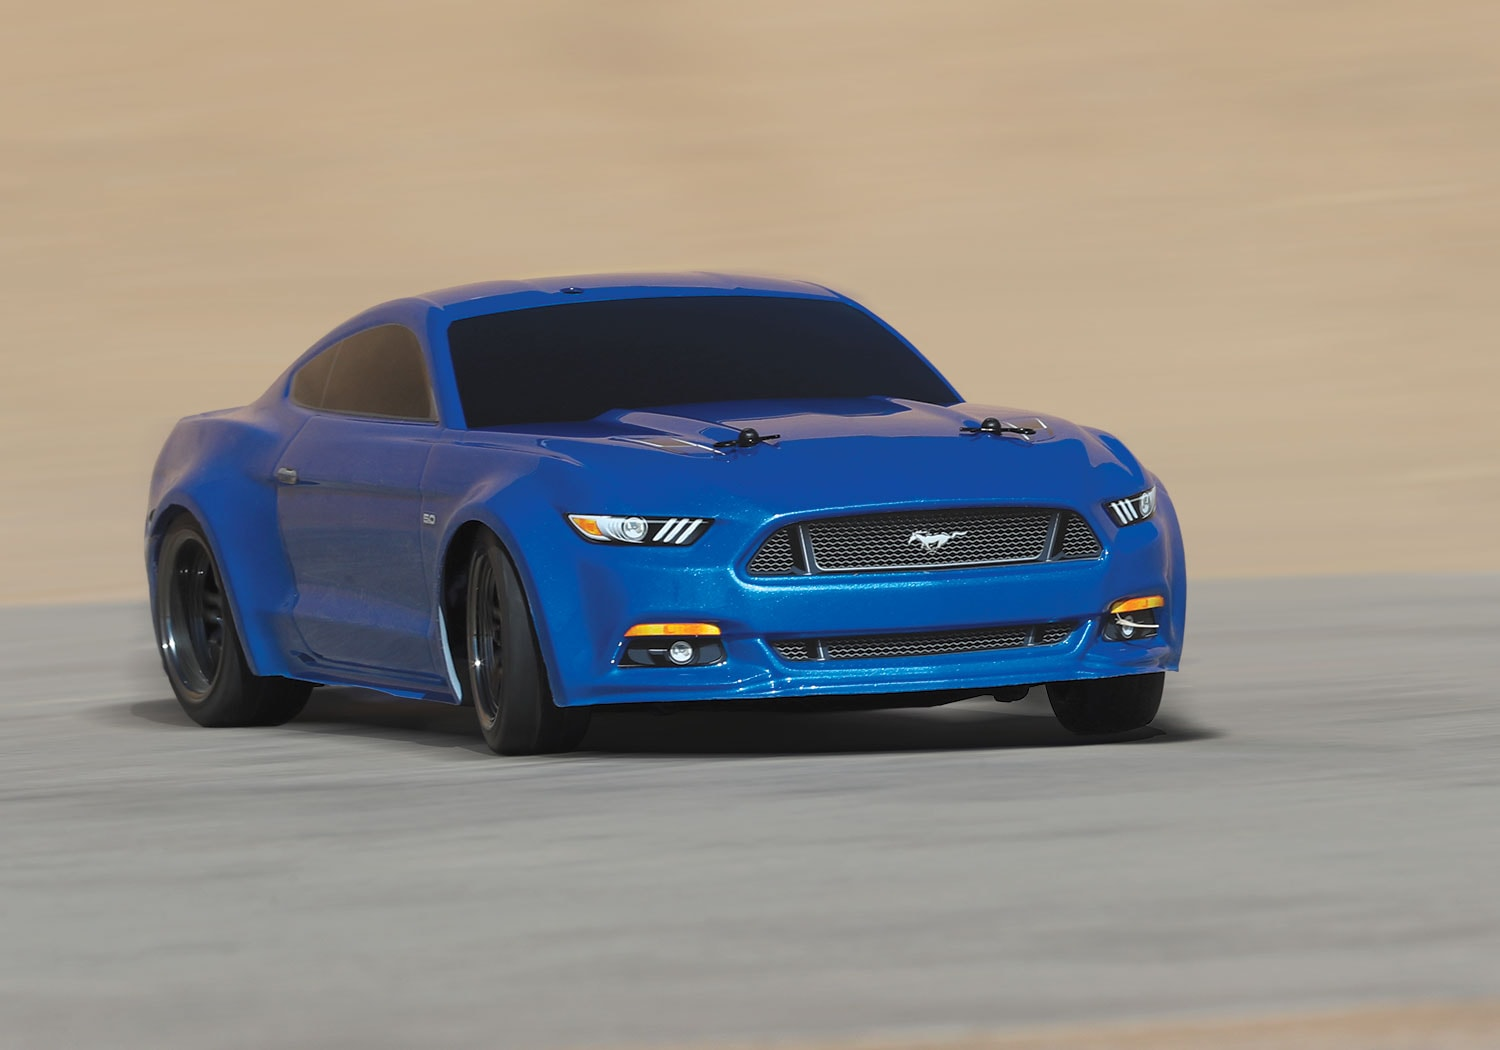 The Traxxas 4-Tec 2.0 Mustang GT is Now Available in Red or Blue